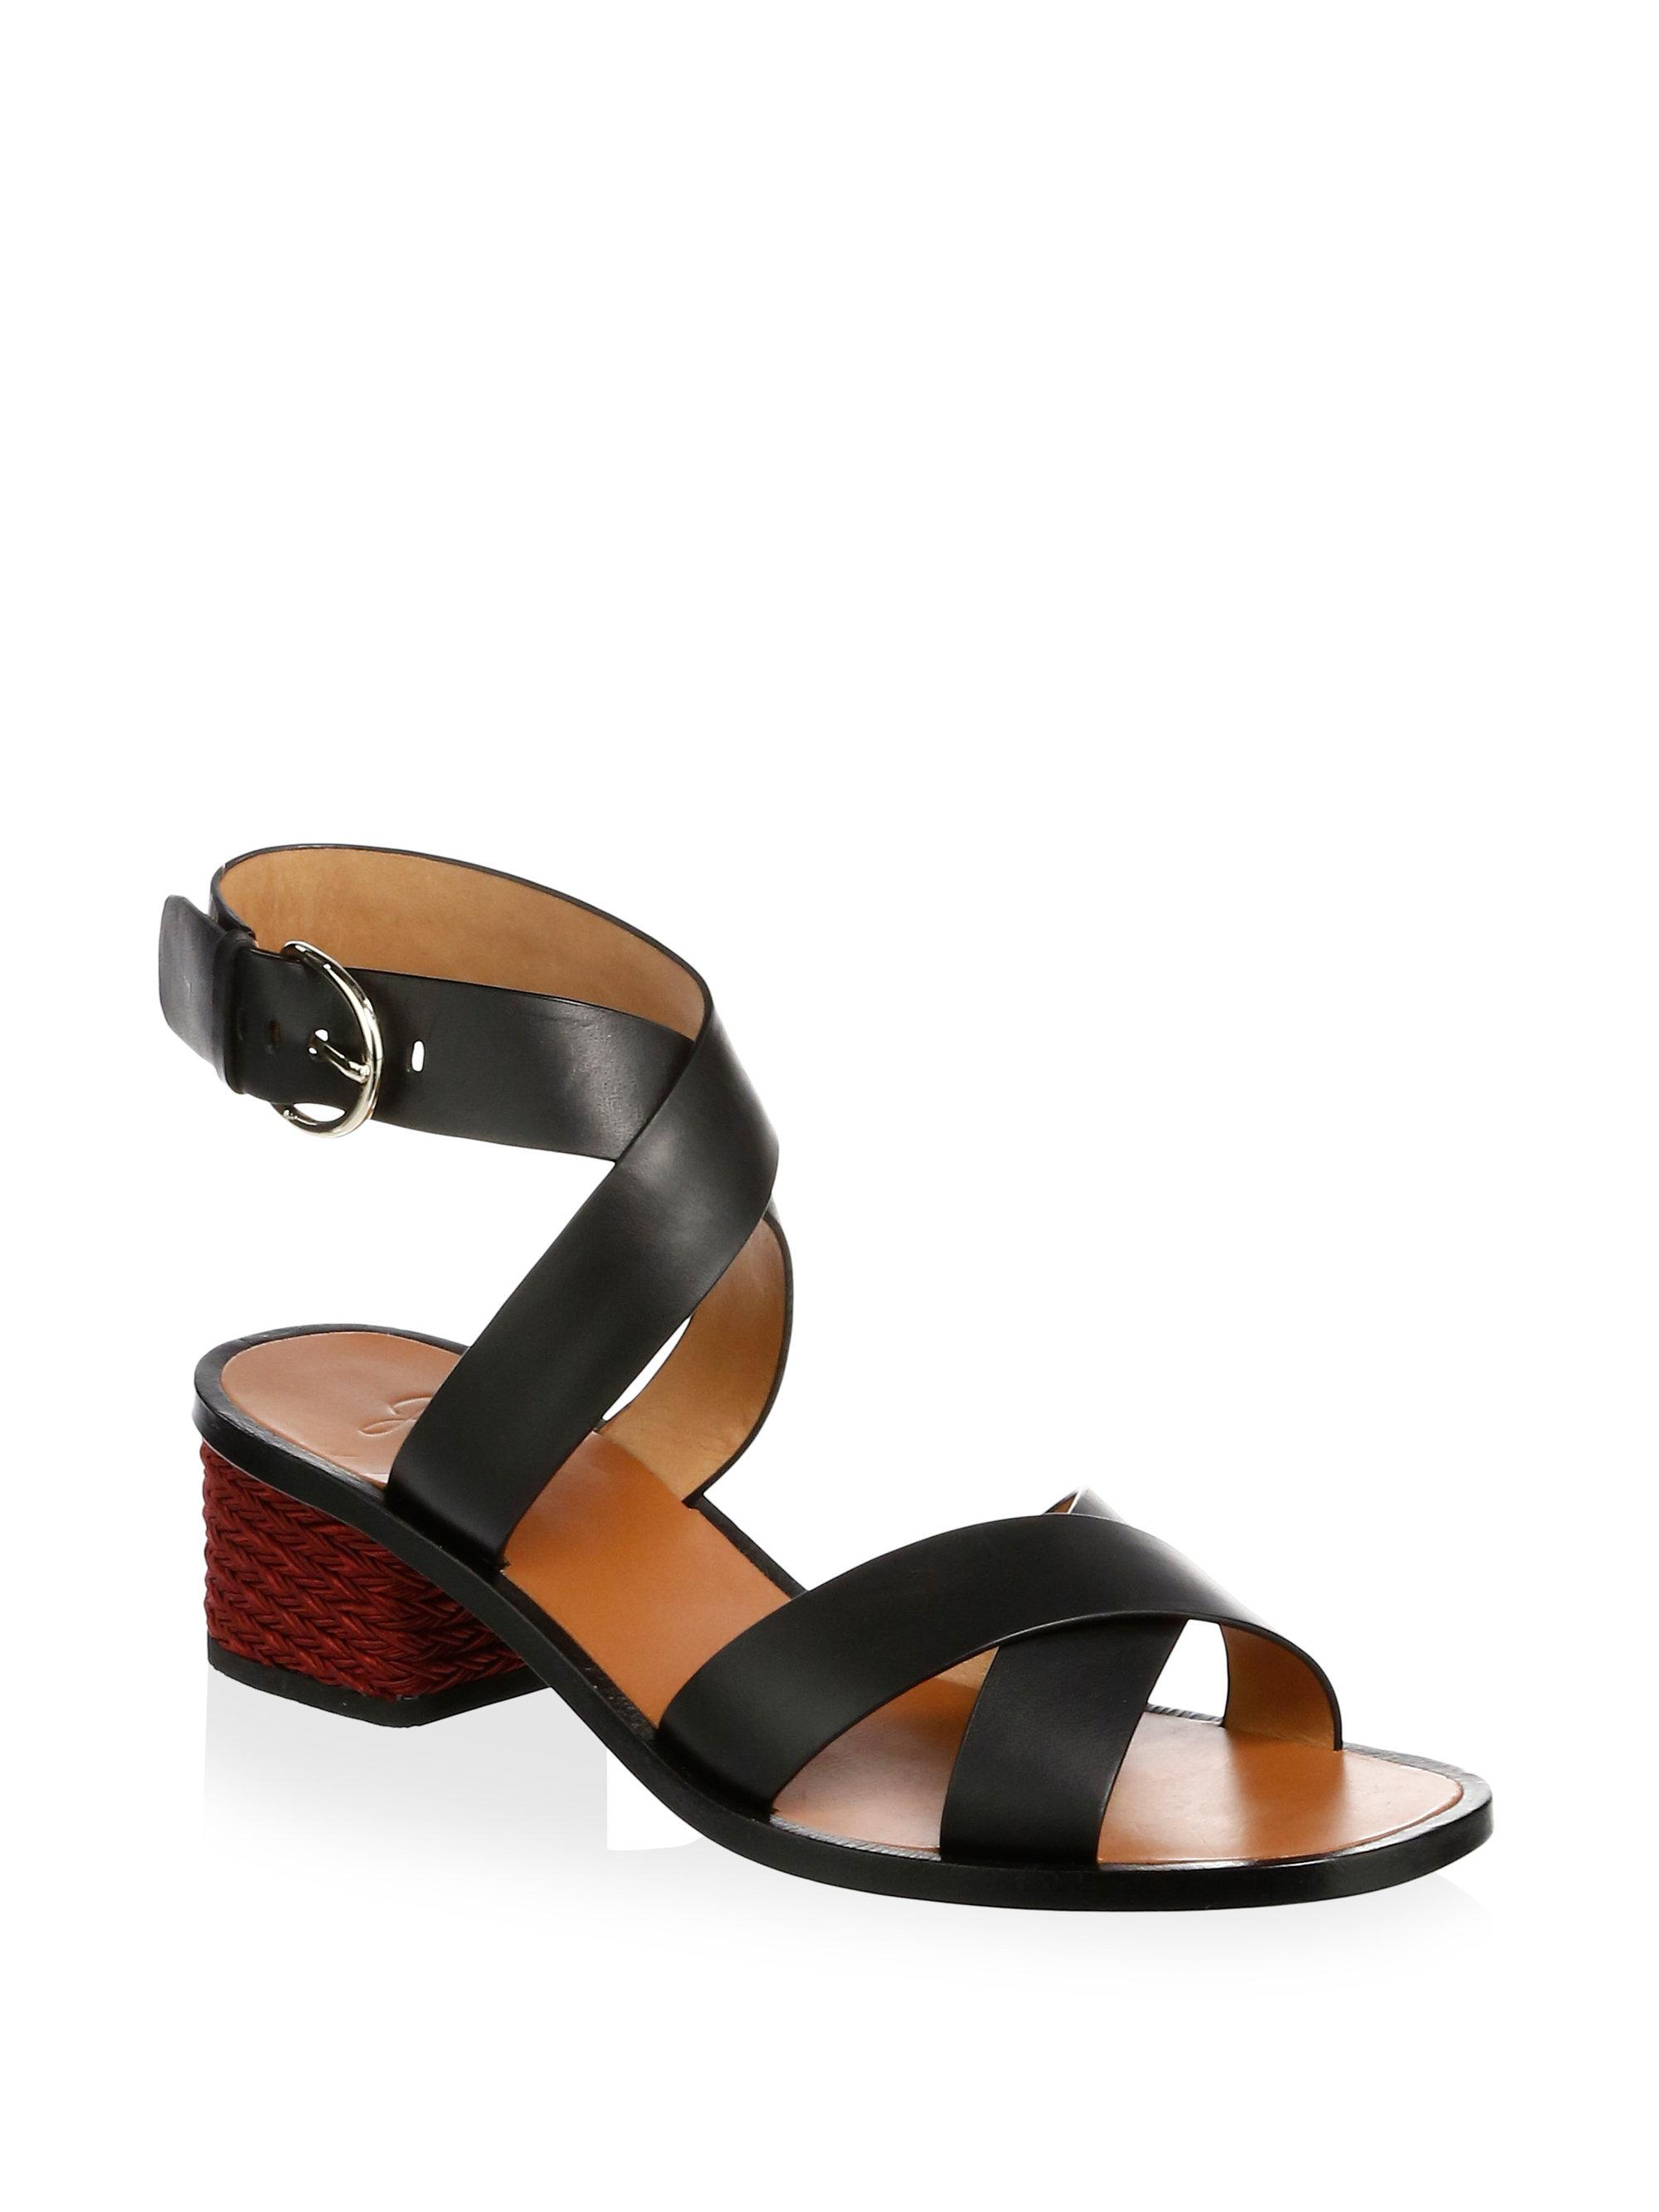 Joie Rana Leather Ankle Strap Sandals f1Vk2lZHp